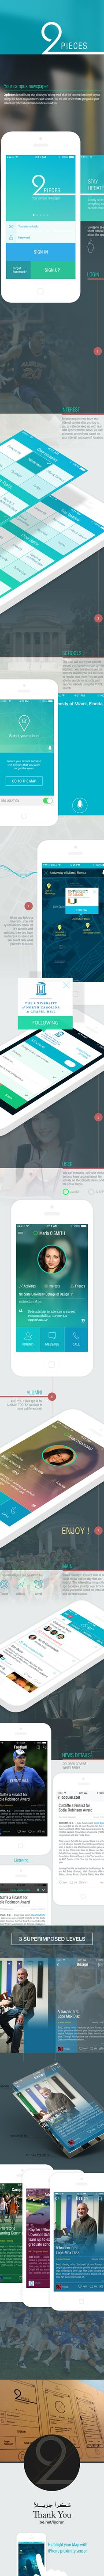 Social Student App IPHONE/ANDROID on Behance